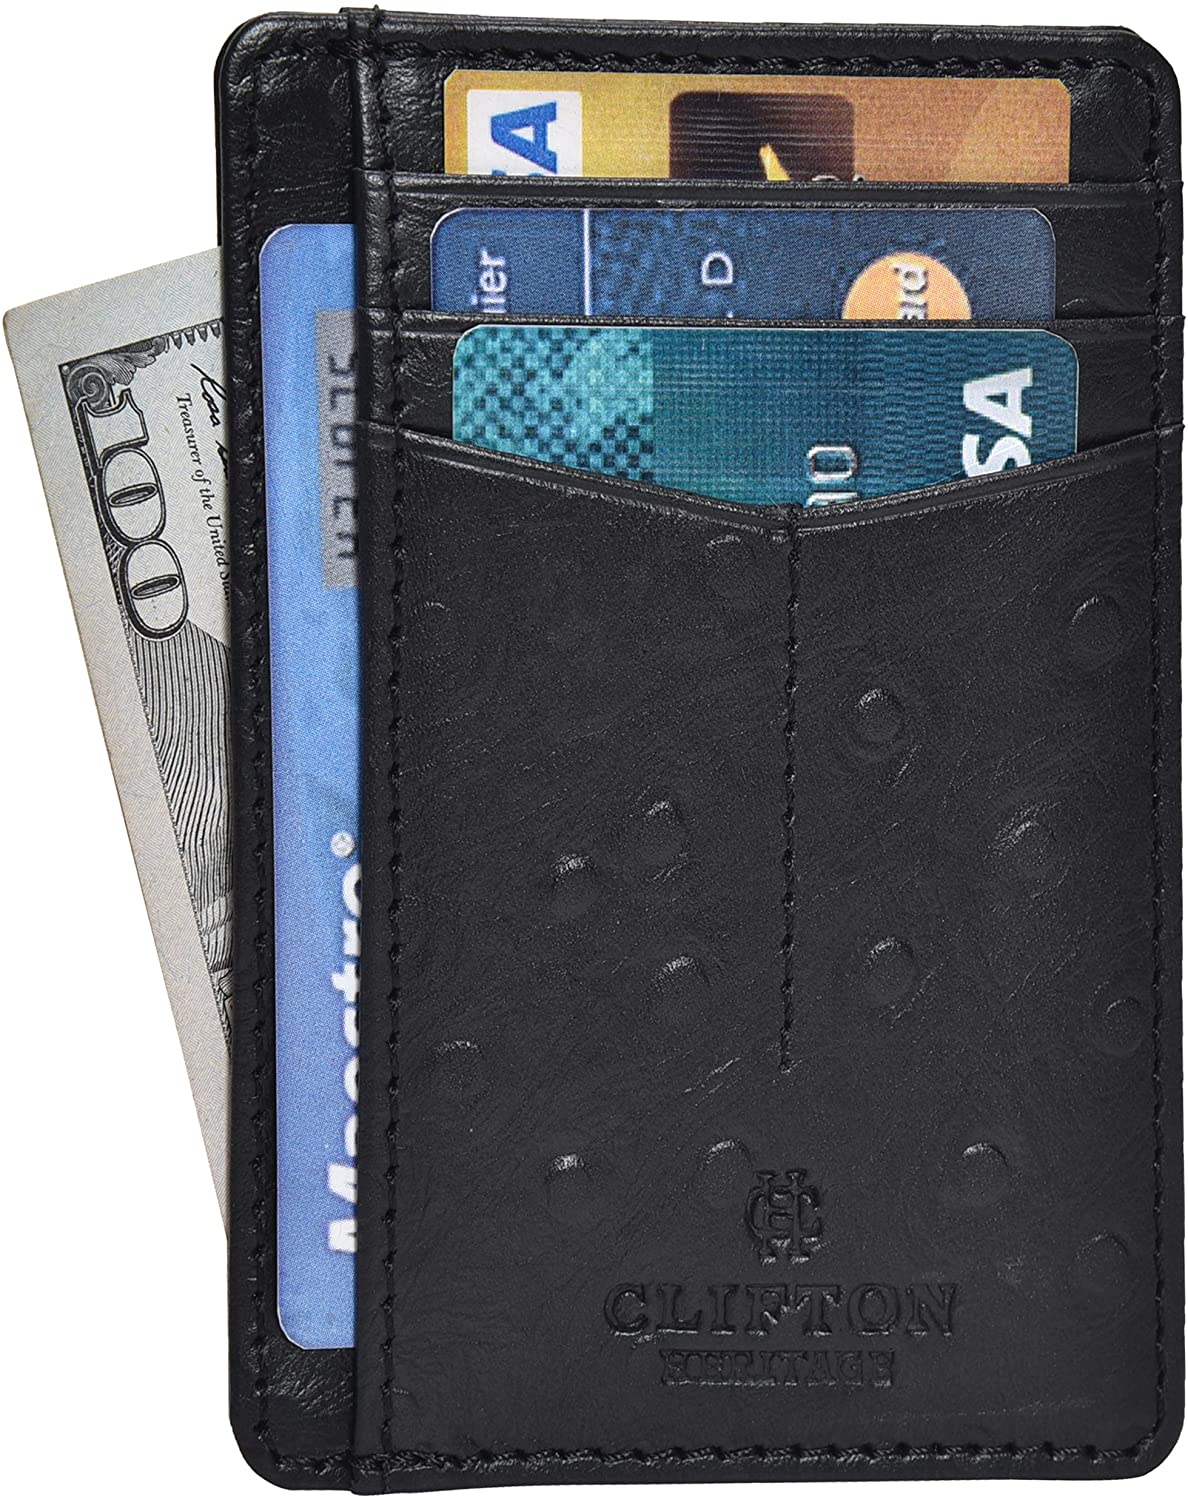 Classier: Buy Clifton Heritage Leather Minimalist Wallets For Men RFID Blocking Slim Front Pocket Card Wallet